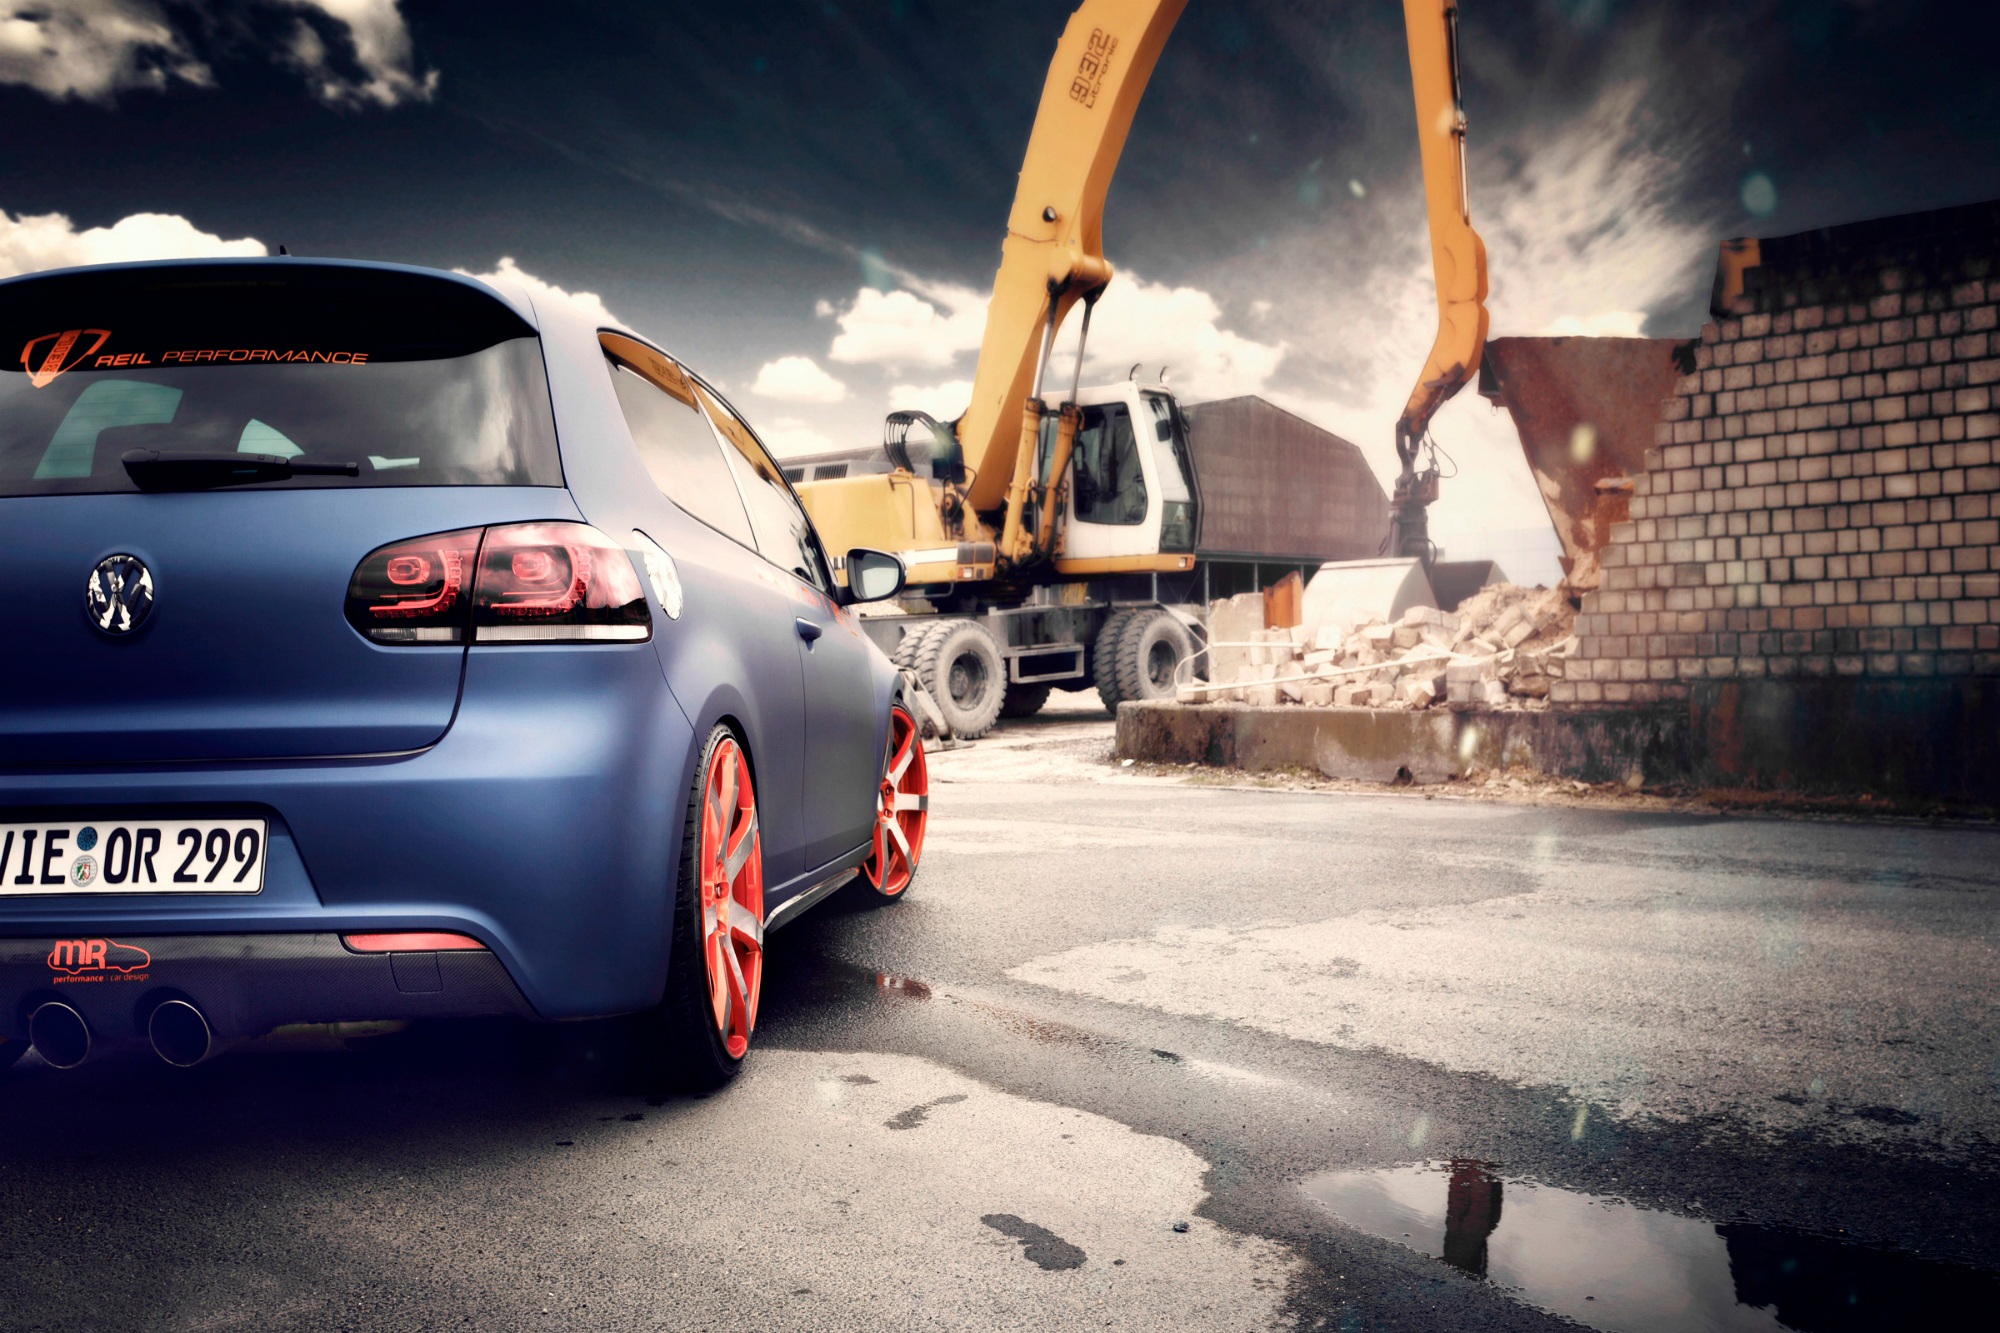 Volkswagen Golf Hd Wallpapers - HD Desktop Wallpapers